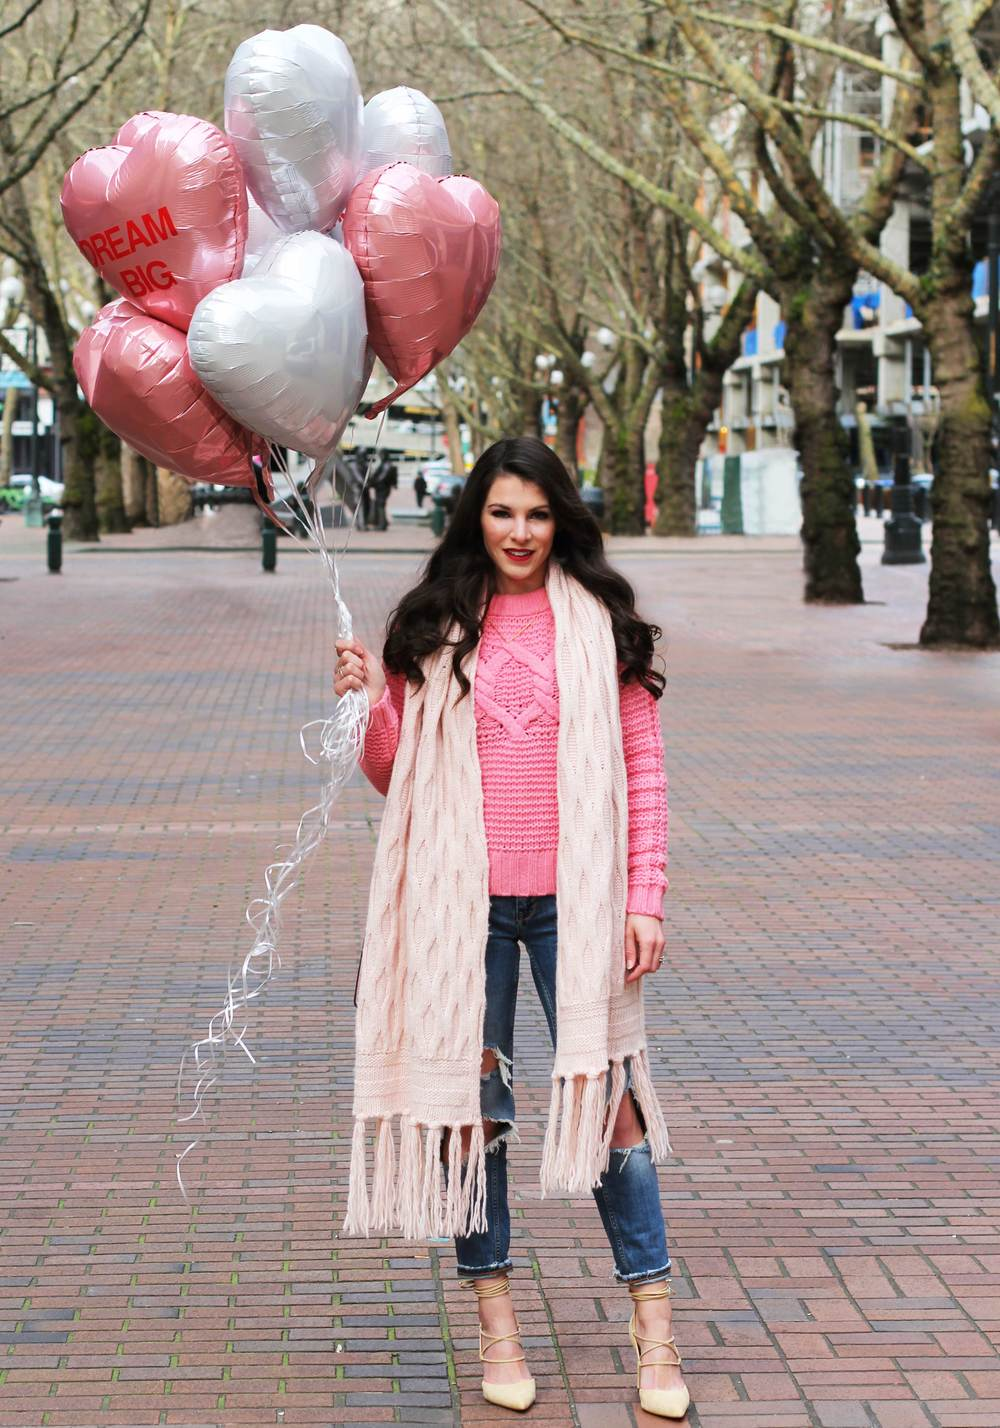 "Casual Valentine's Day Outfit, Banana Republic Cable-Knit Sweater & Scarf, Destroyed Girlfriend Jeans, Sam Edelman ""Dayna"" Lace-Up Pumps, Rebecca Minkoff 'Mab Mini' Handbag, Conversation Heart Balloons"